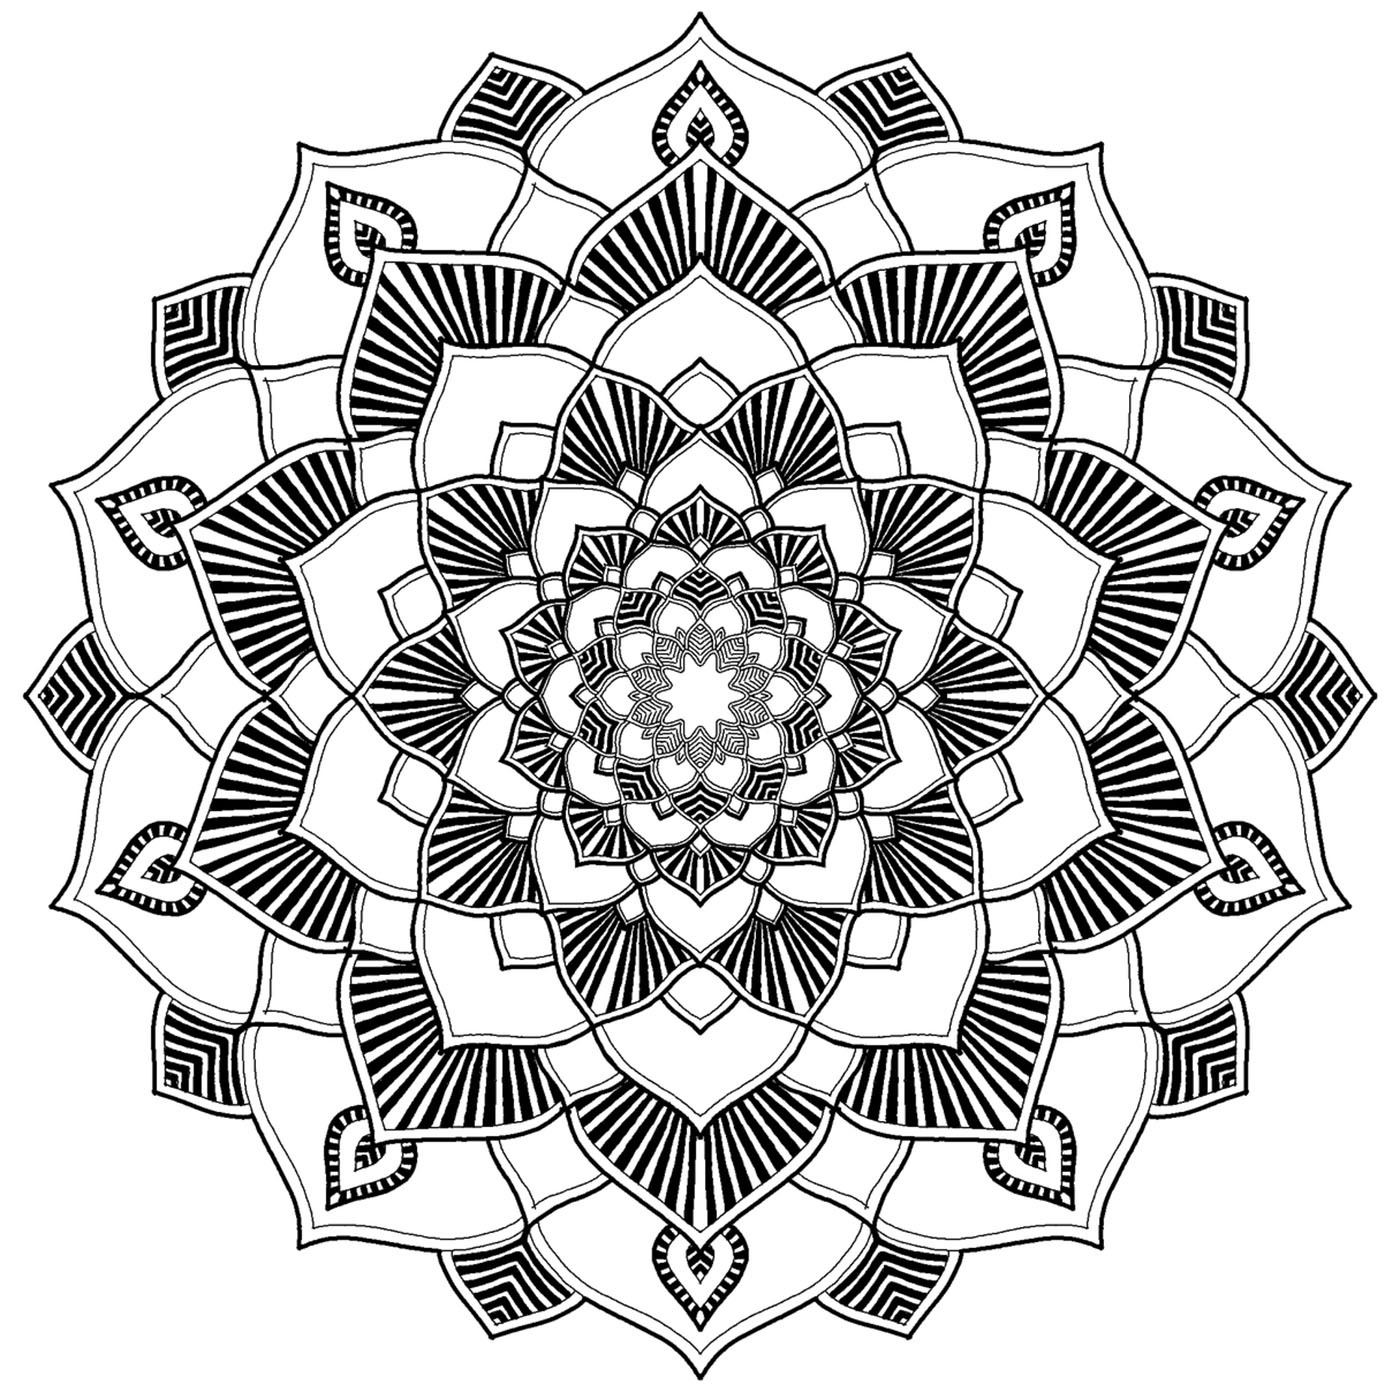 Mandala with cute patterns, abstract but really harmonious. Some like to express themselves through words, while some use the form art ... What do you prefer ?